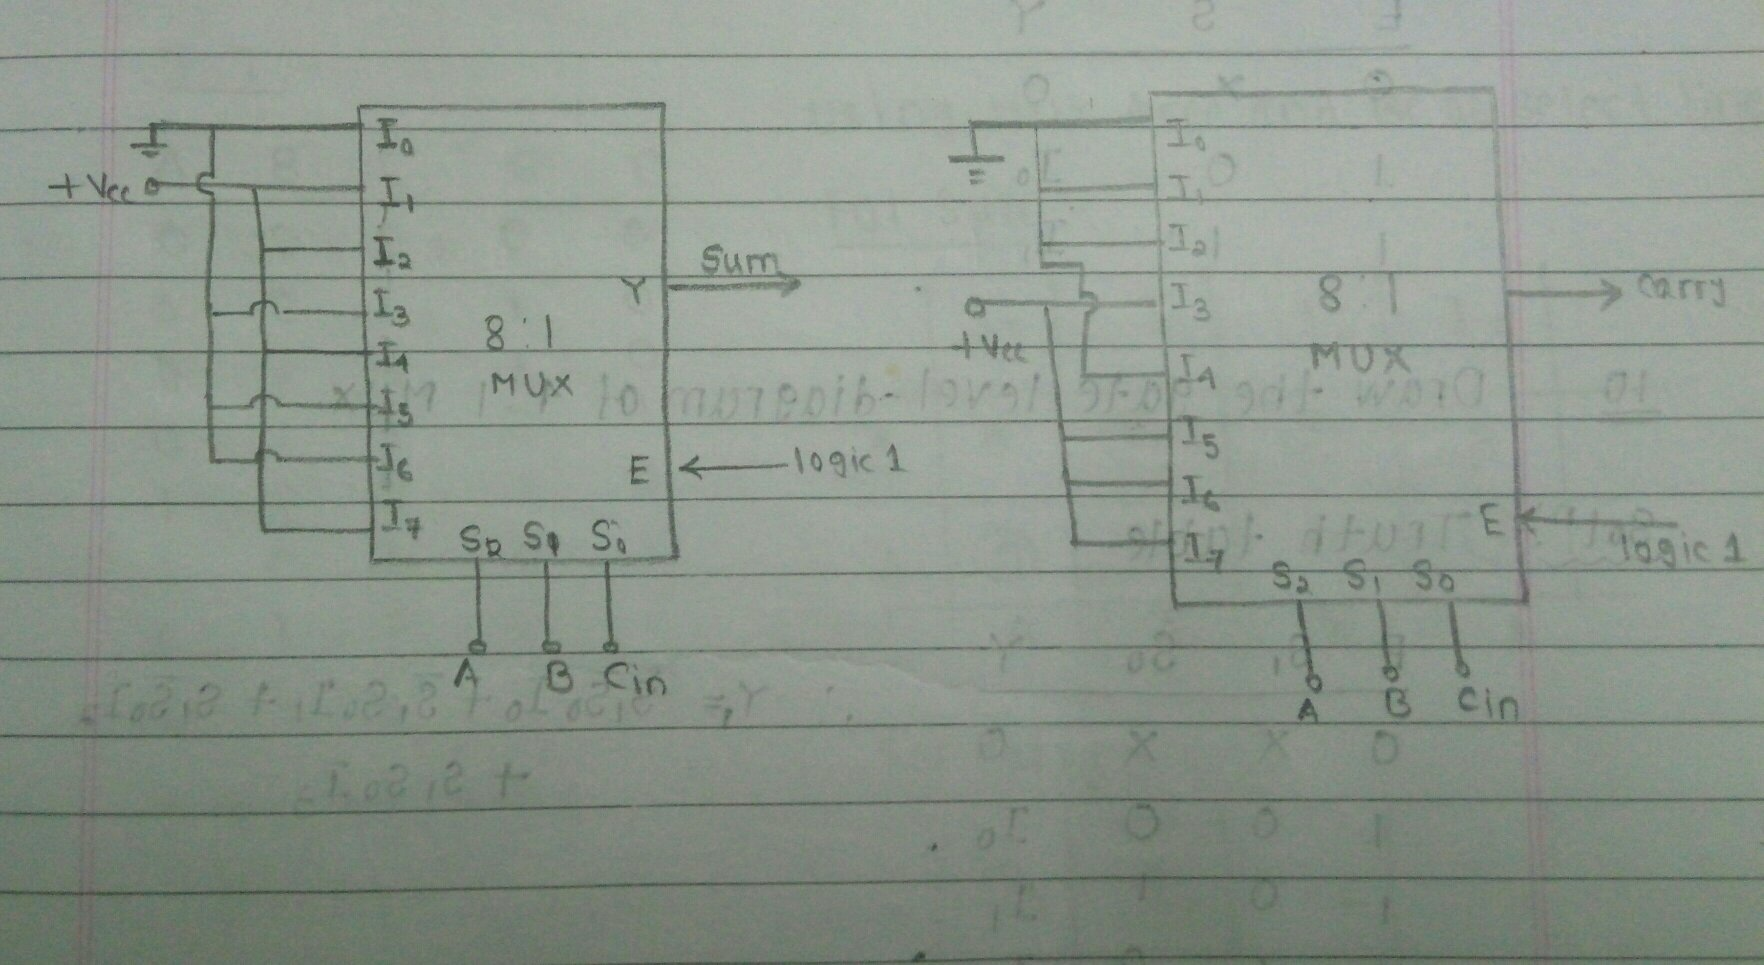 How Can We Implement Full Adder Using 81 Multiplexer Quora Systems Simulation Of 4bit Circuit In Verilog Hdl This Be Done Directly Since Only Mux Needs To Usedit Just Plotting The Sum And Carry Expression